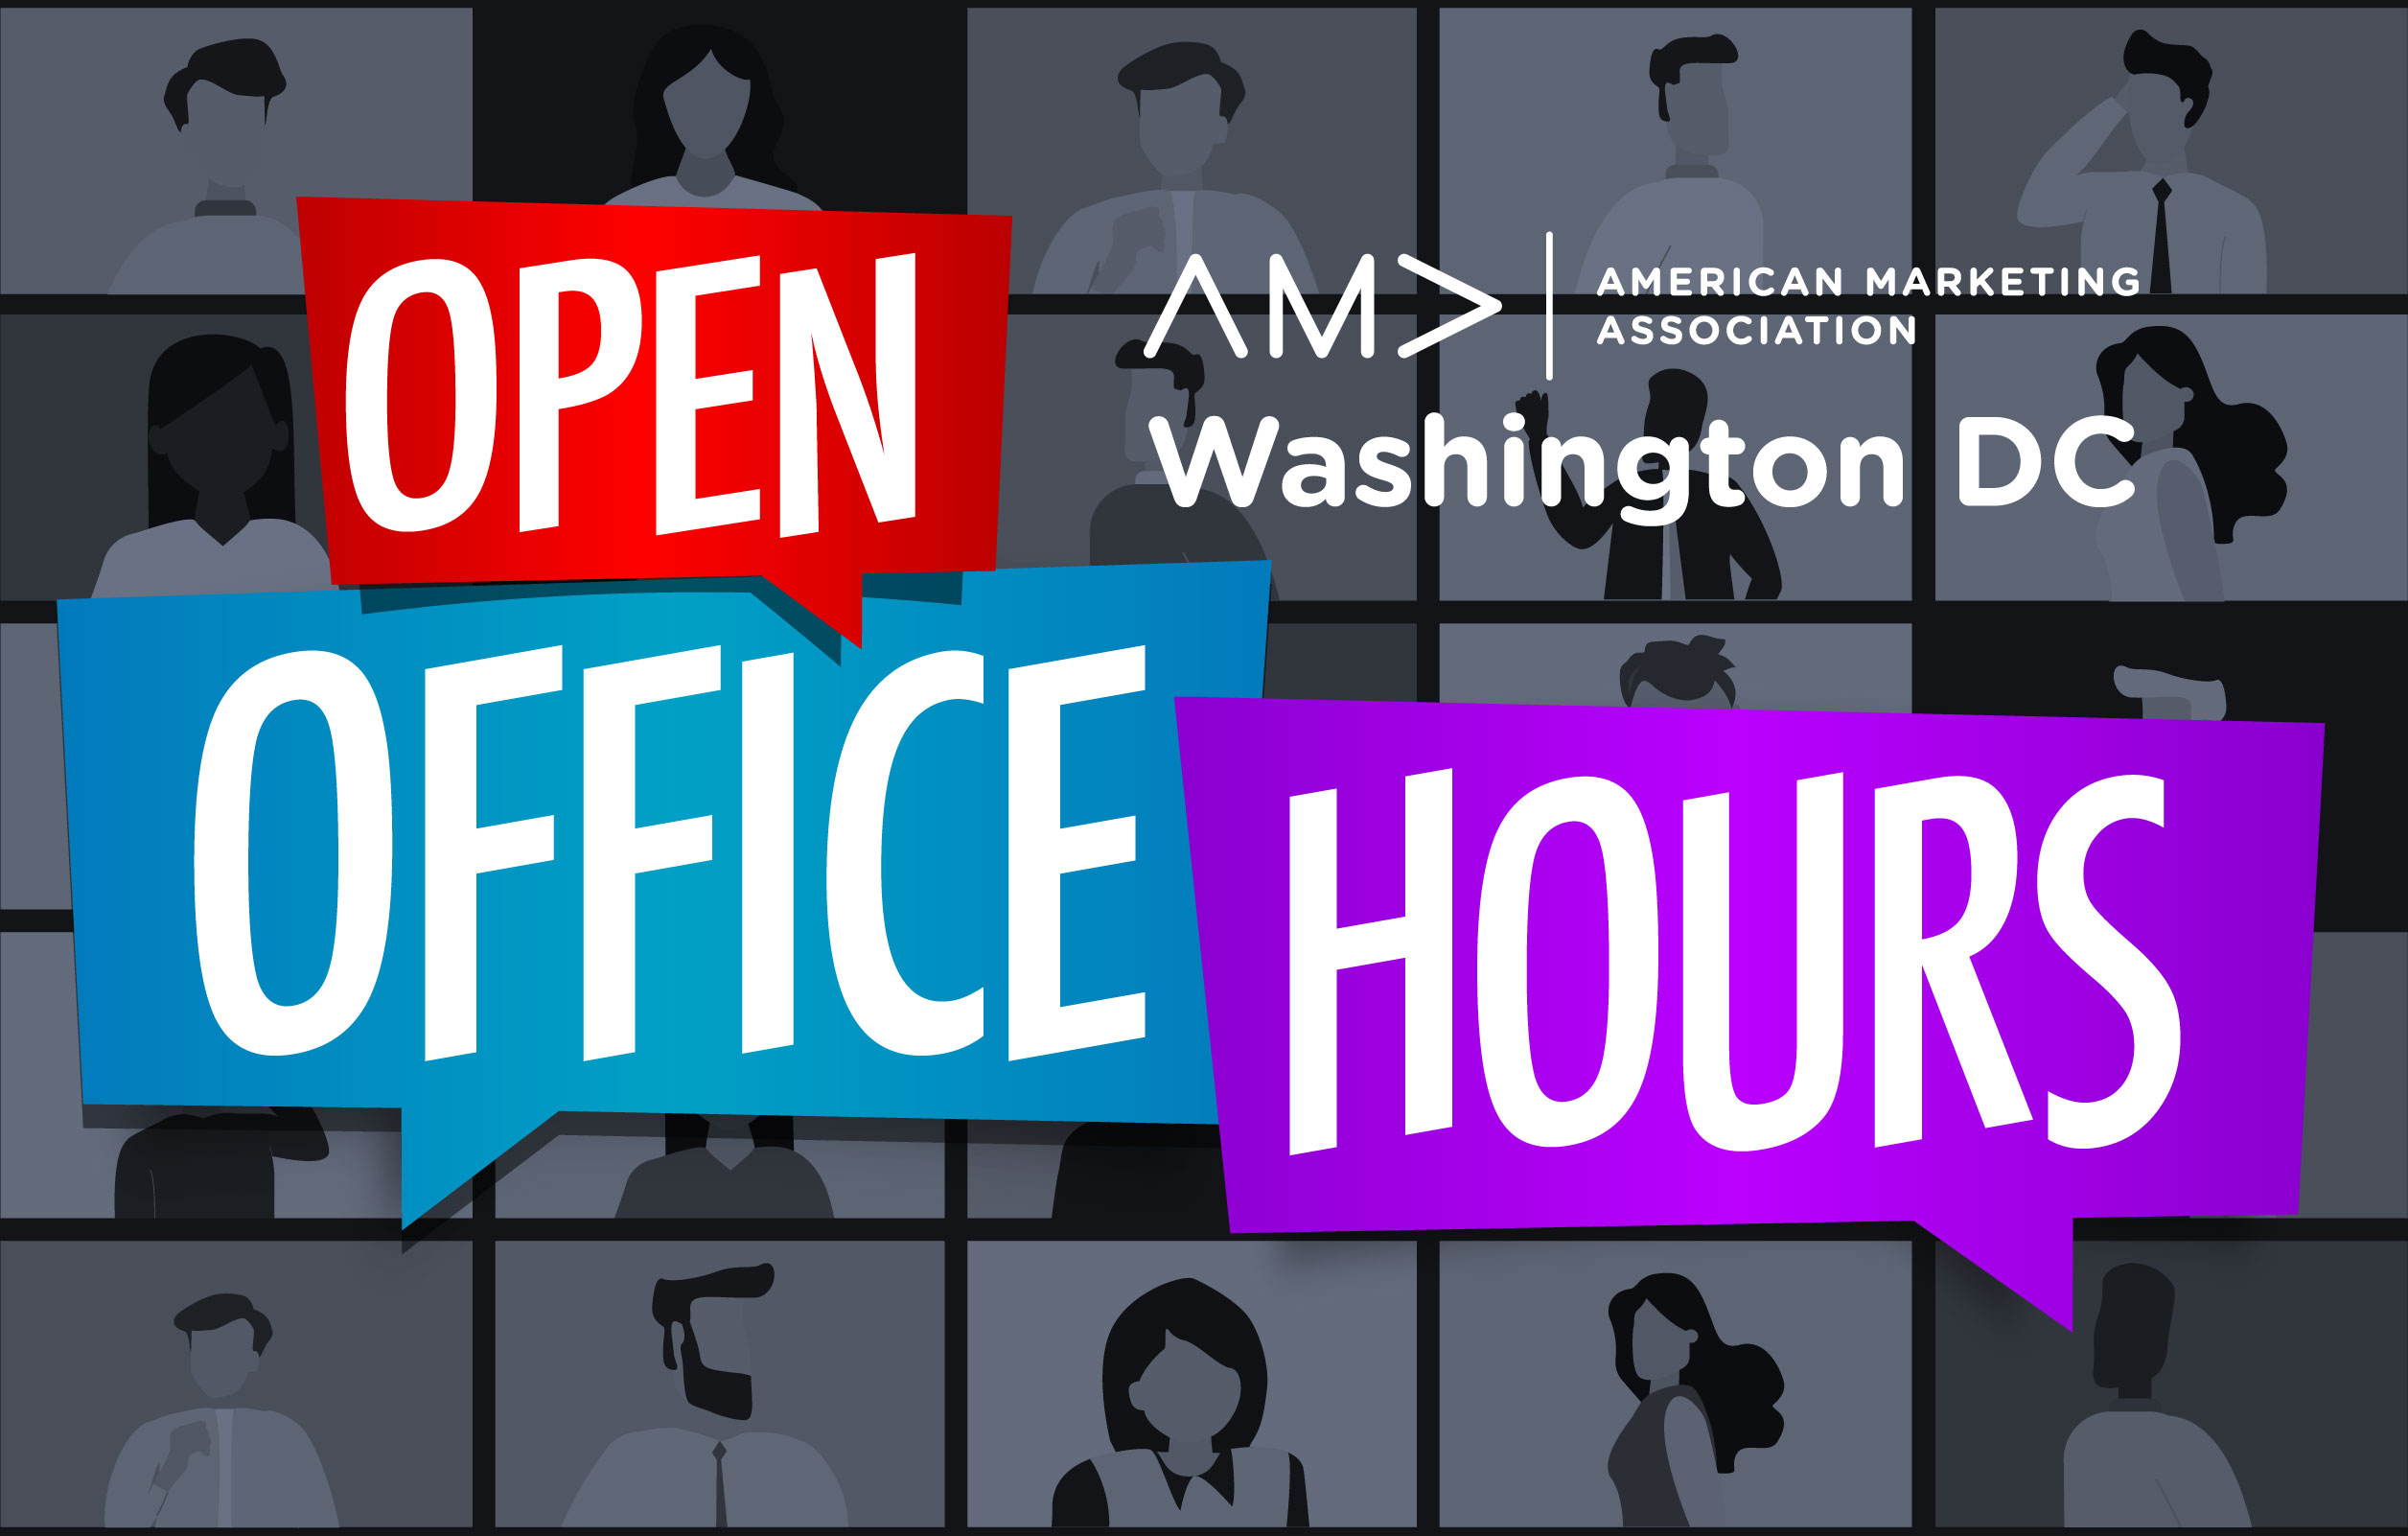 AMADC Open Office Hours